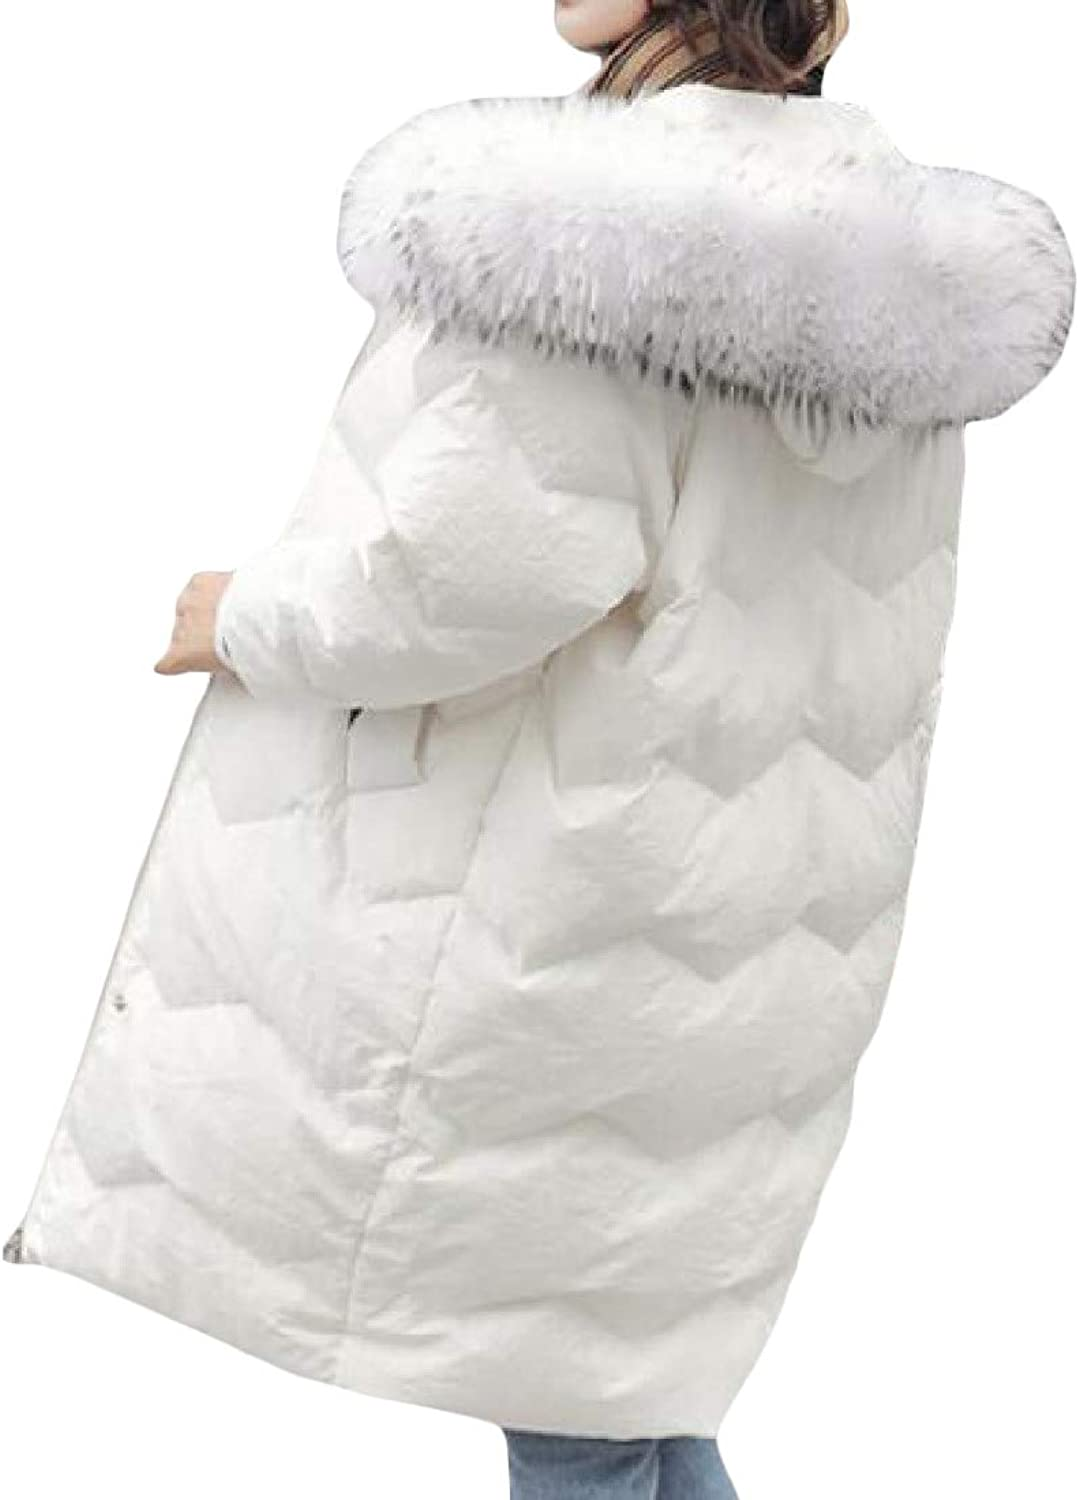 Cromoncent Women's Winter Faux Fur Hooded Puffer Thicken MidLength Parka Jackets Coat